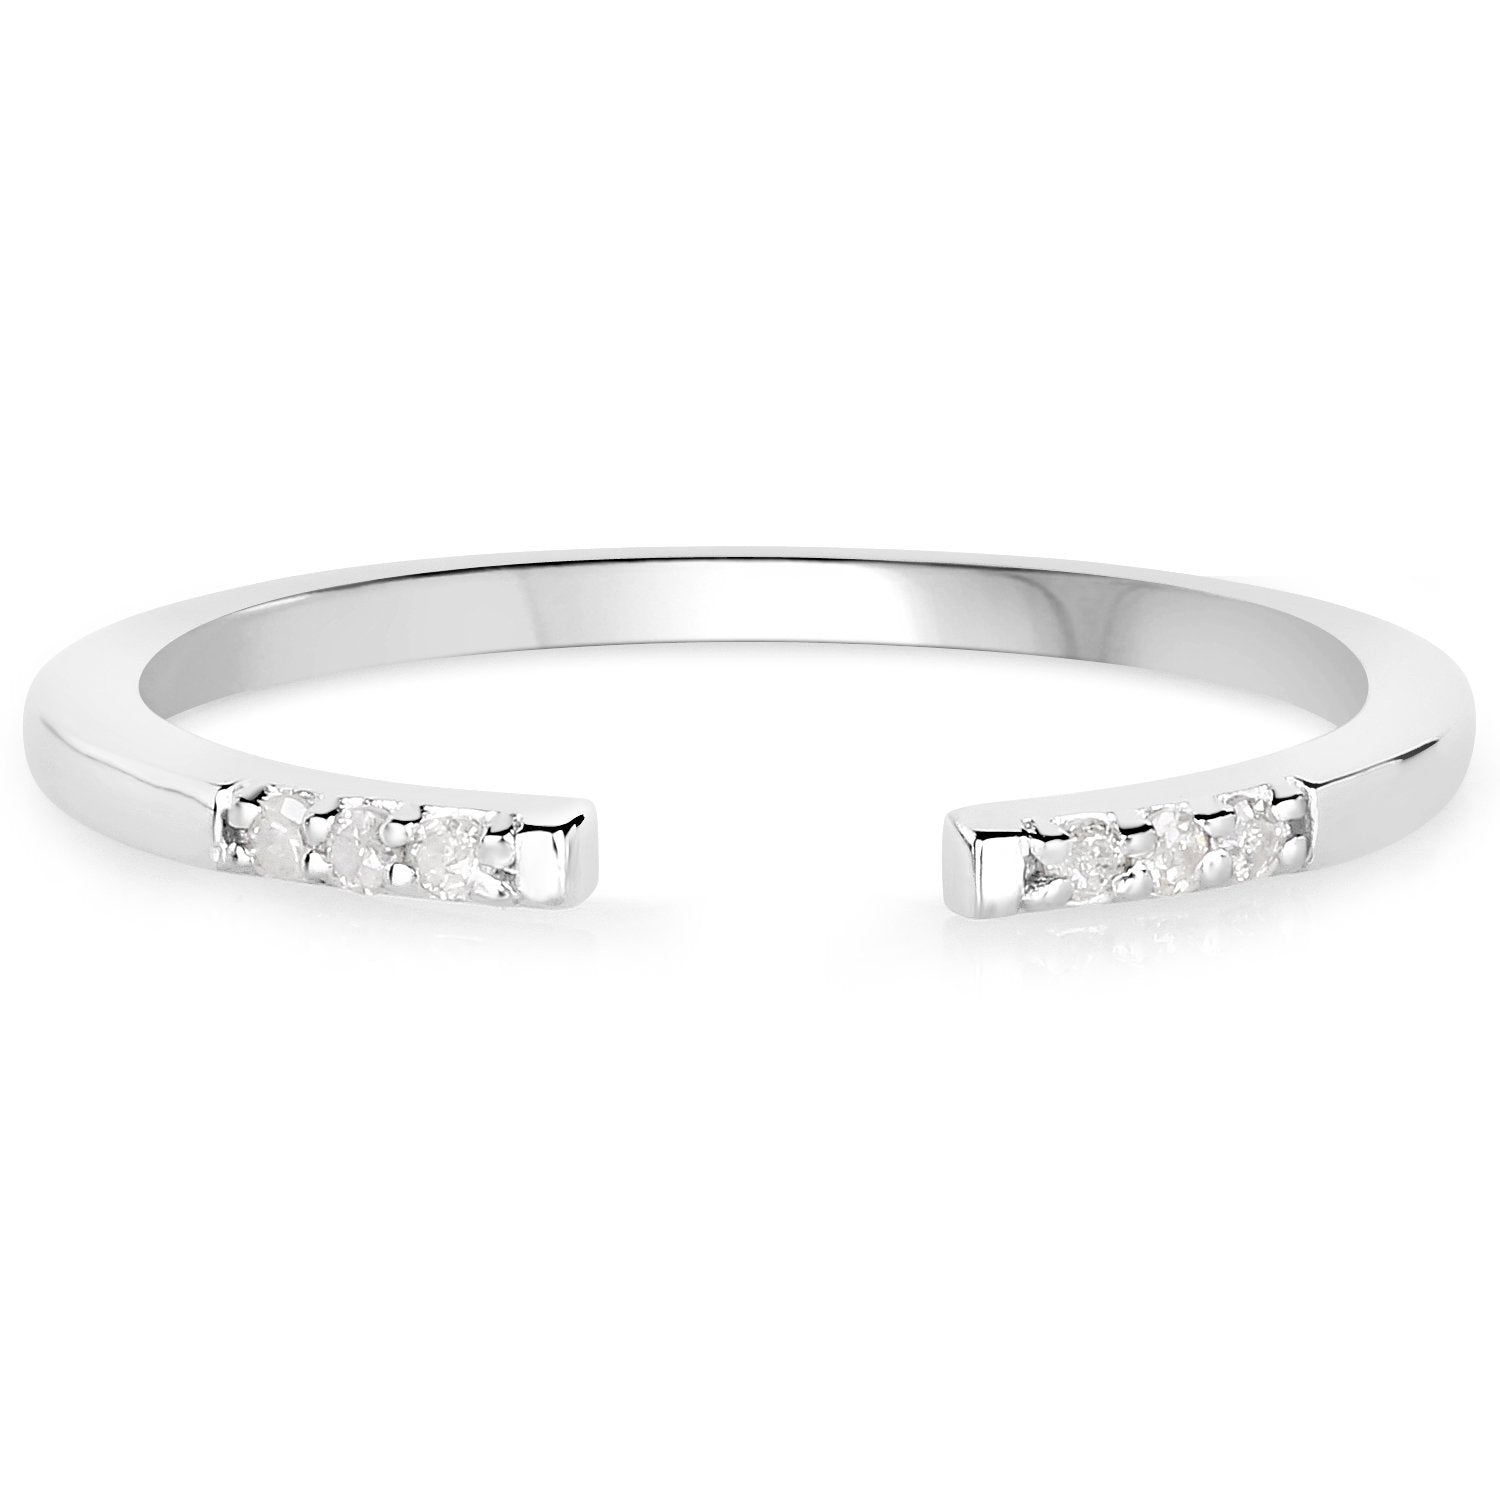 LoveHuang 0.04 Carats Genuine White Diamond (I-J, I2-I3) Open Stacking Ring Solid .925 Sterling Silver With Rhodium Plating